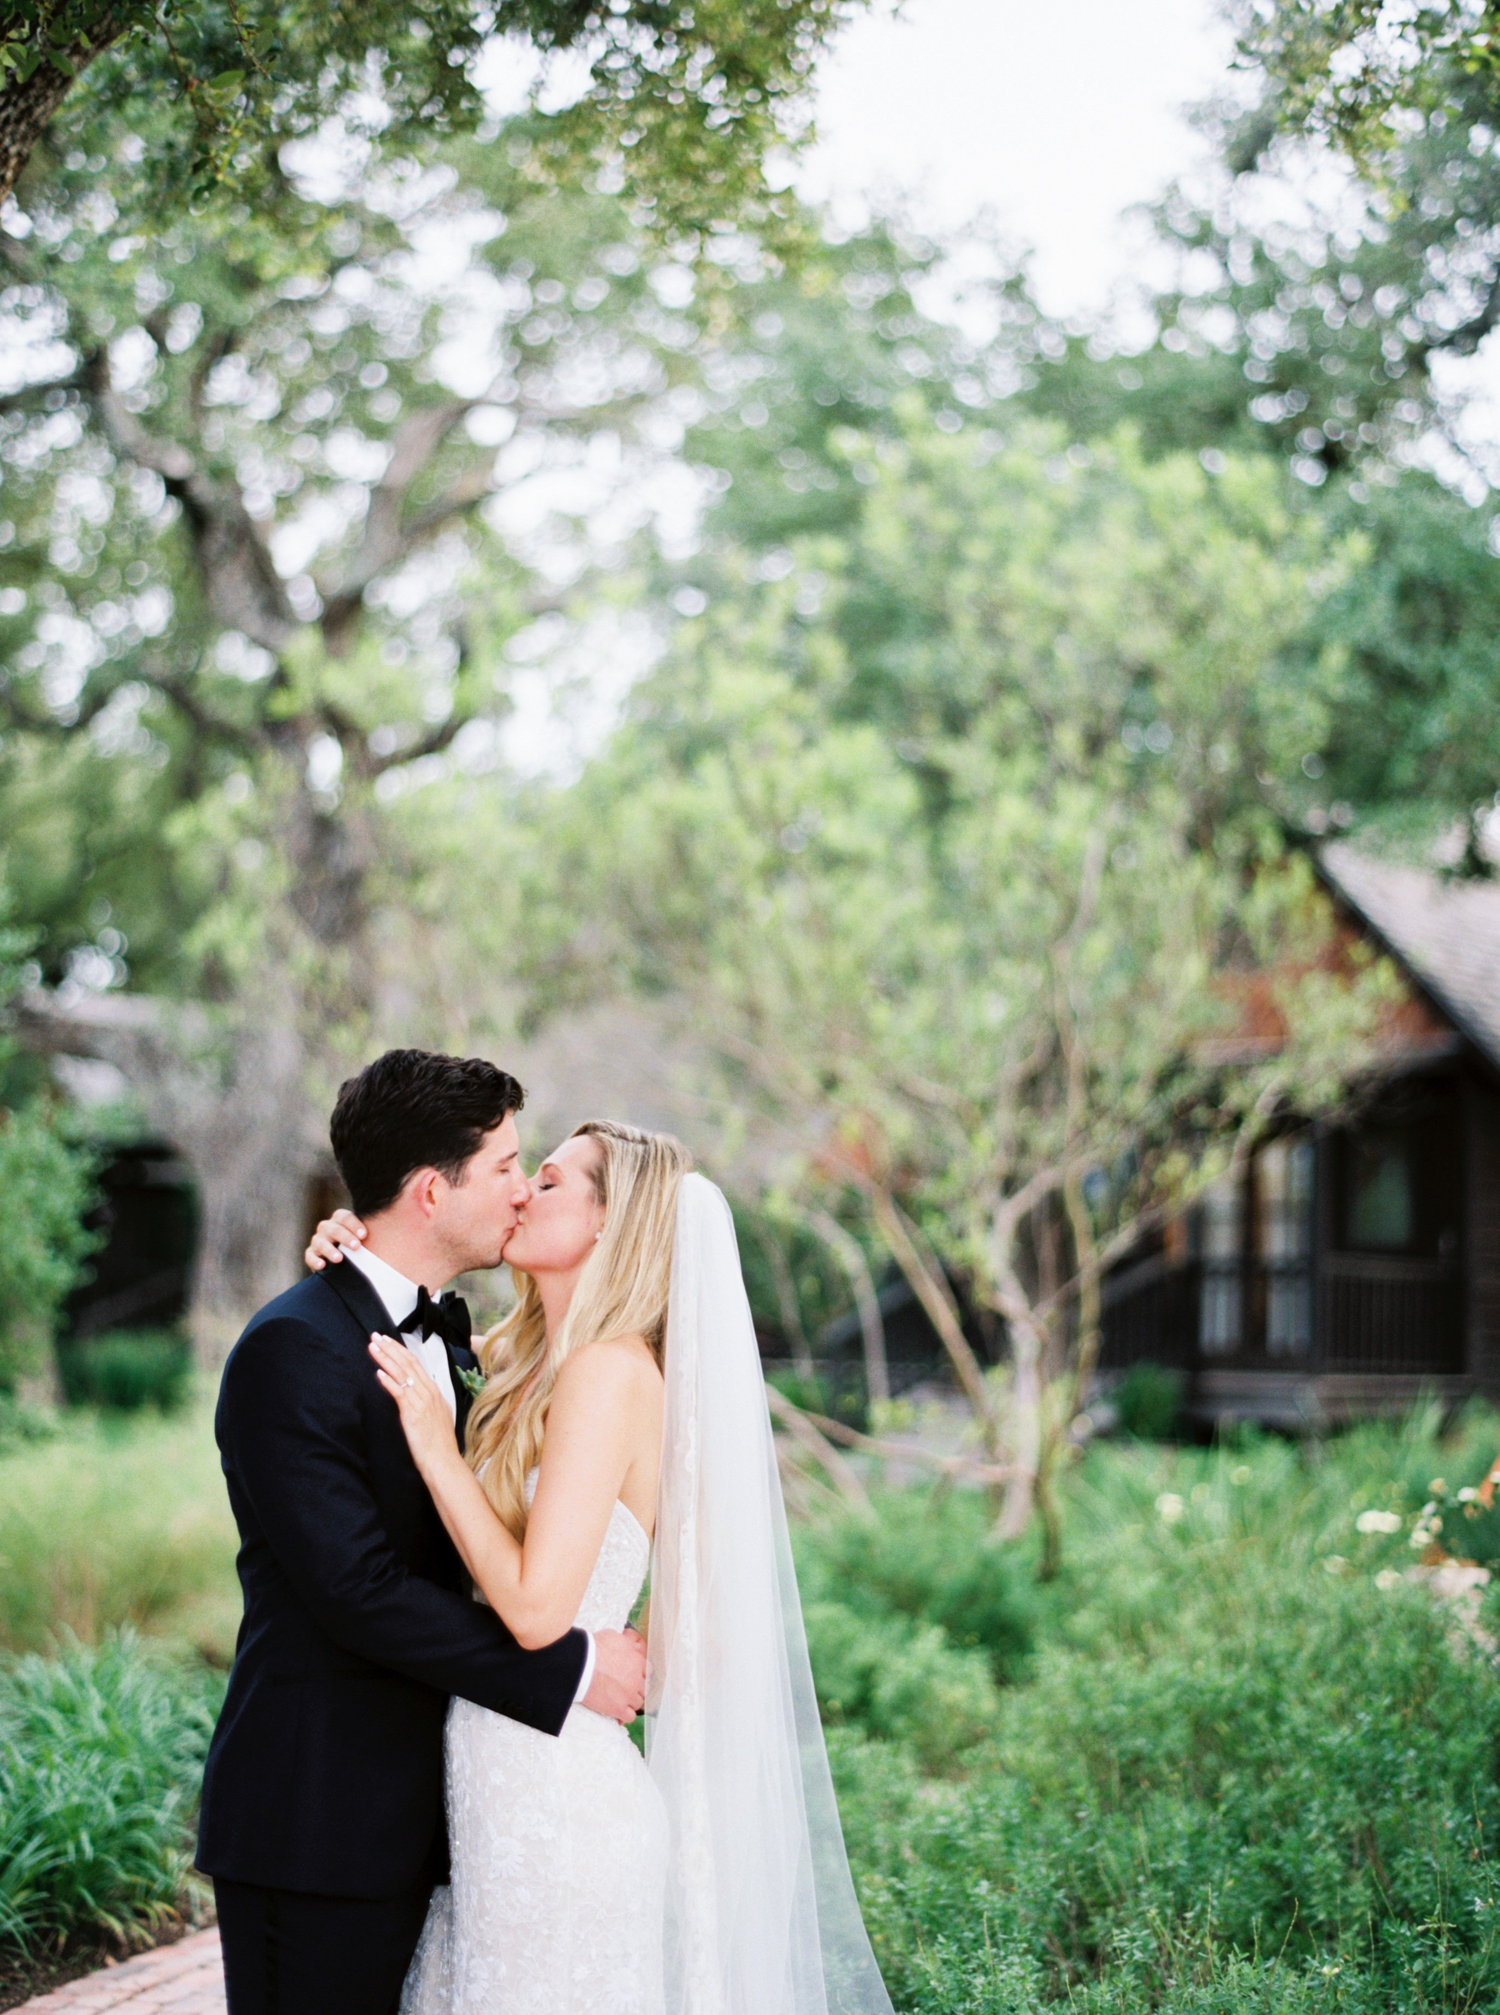 AUSTIN WEDDING PHOTOGRAPHER-52.jpg